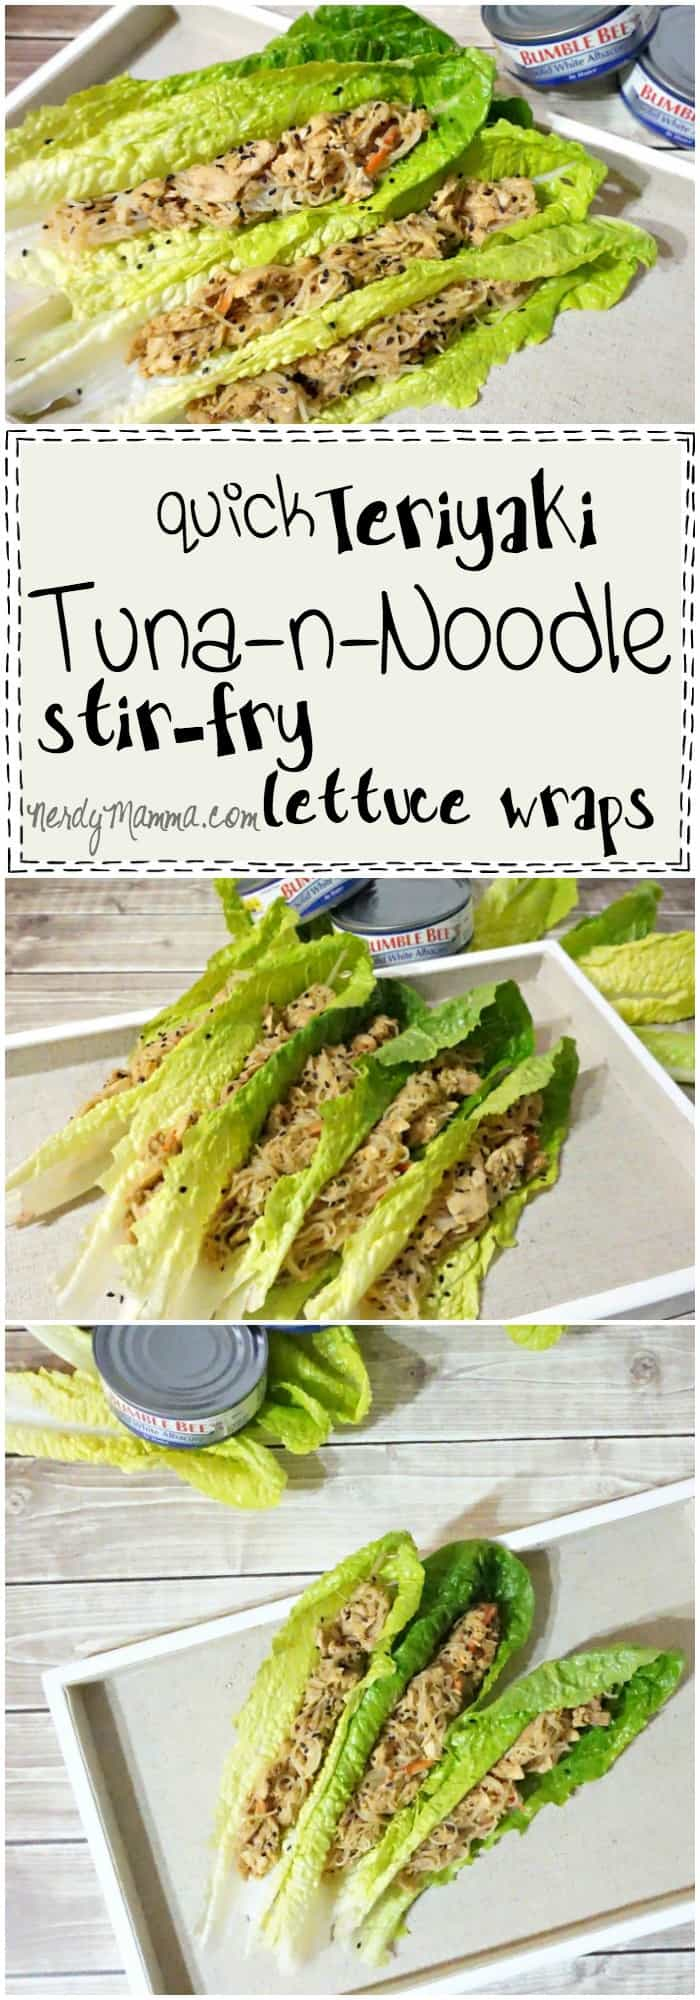 So fast. This recipe for Quick Teriyaki Tuna and Noodle Stir Fry Lettuce Wraps only takes 5 minutes. How AWESOME is that!